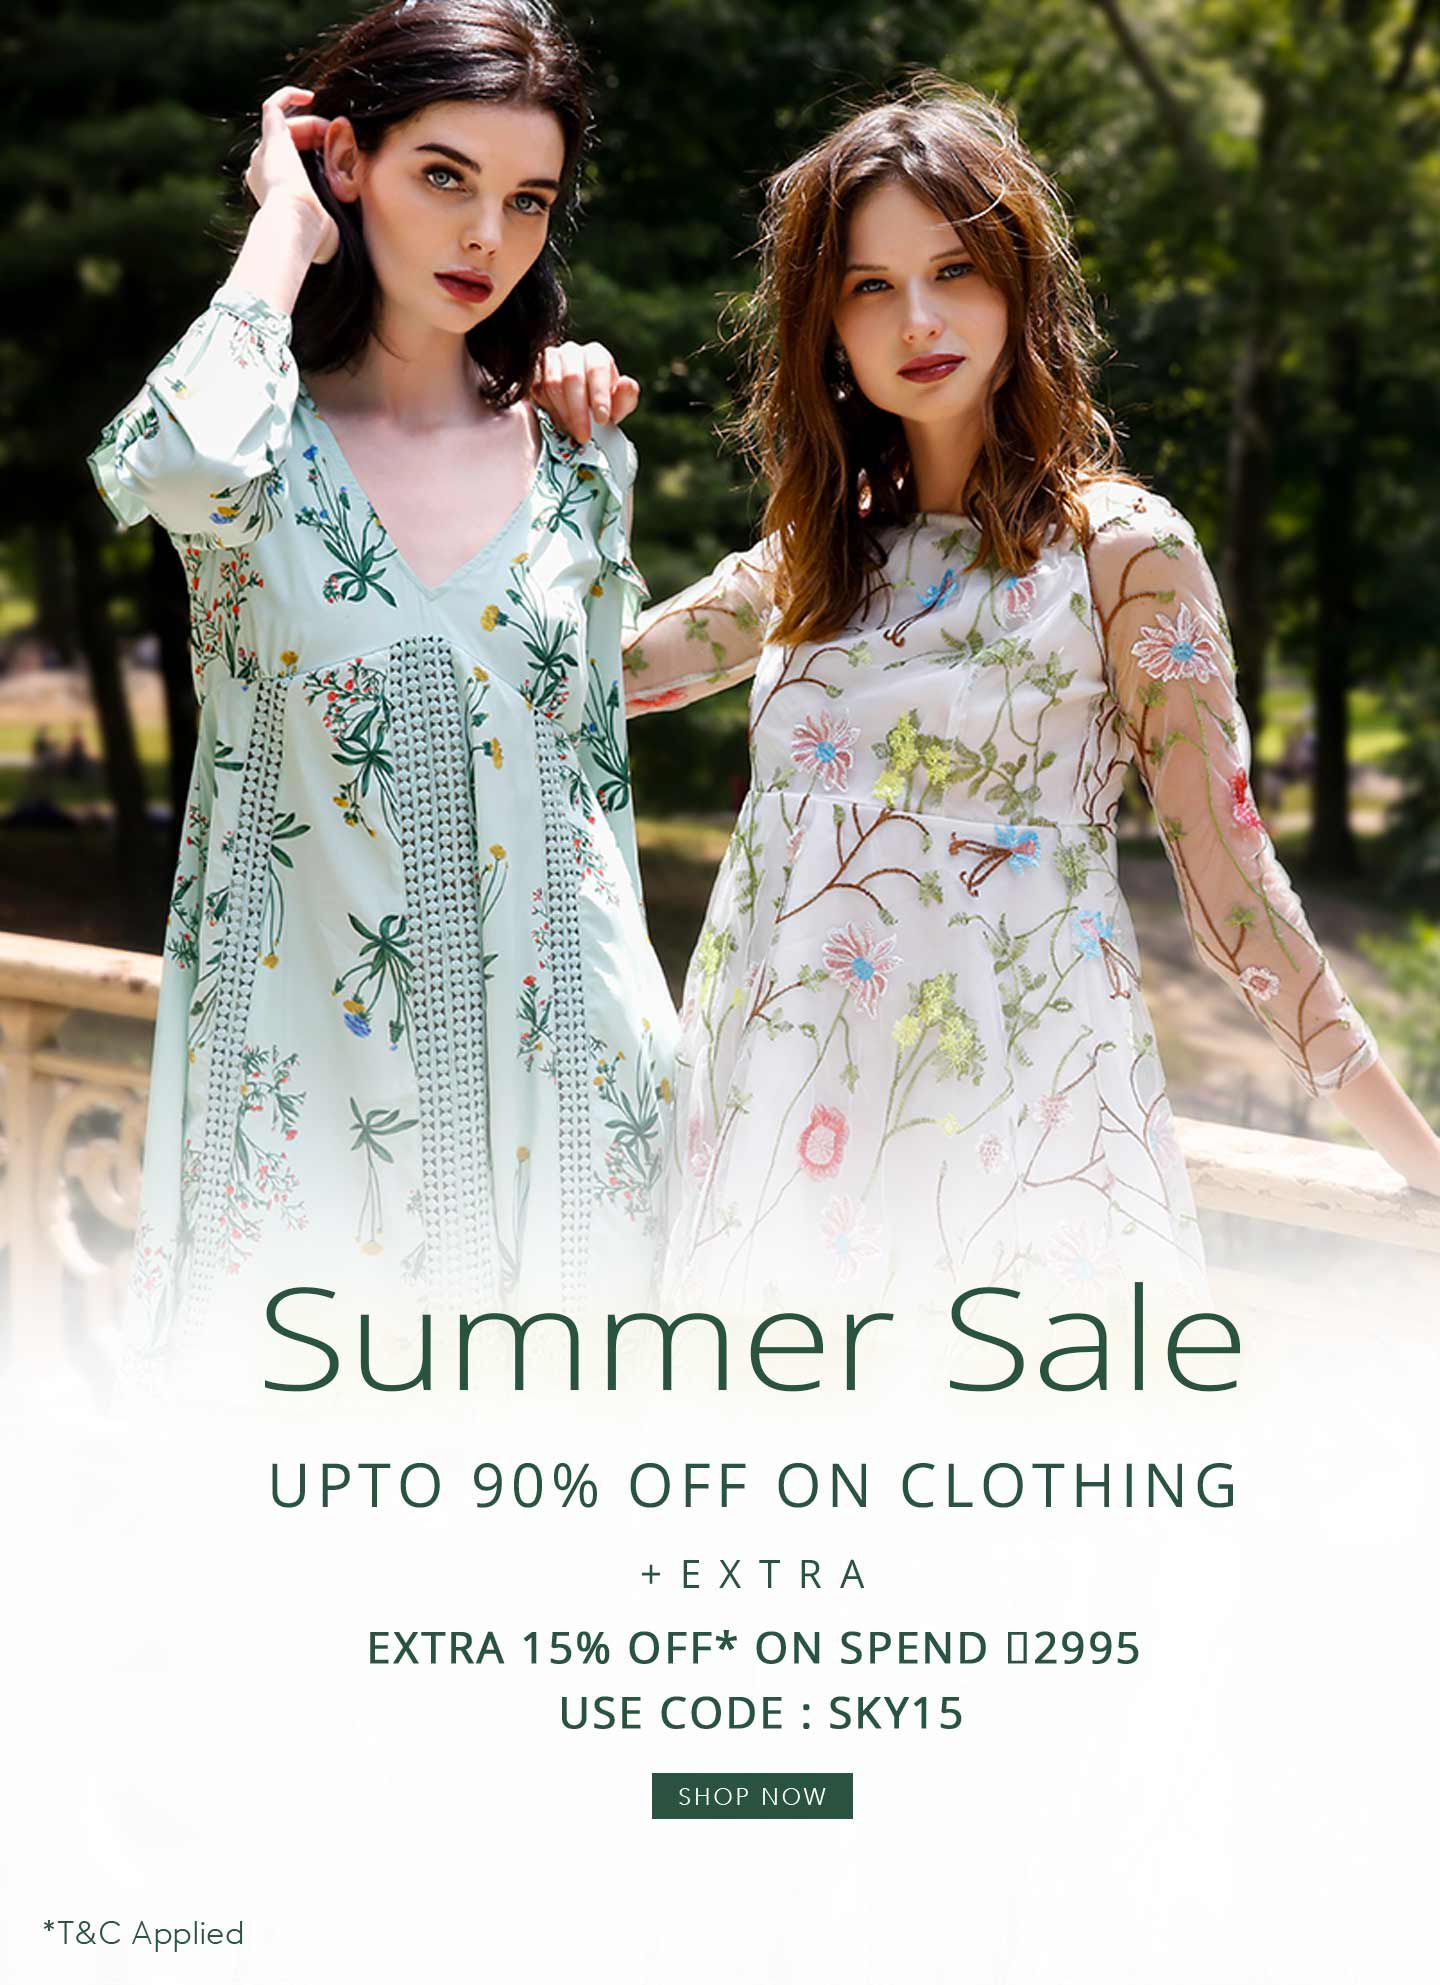 SUMMER SALE UPTO 90% OFF ON CLOTHING